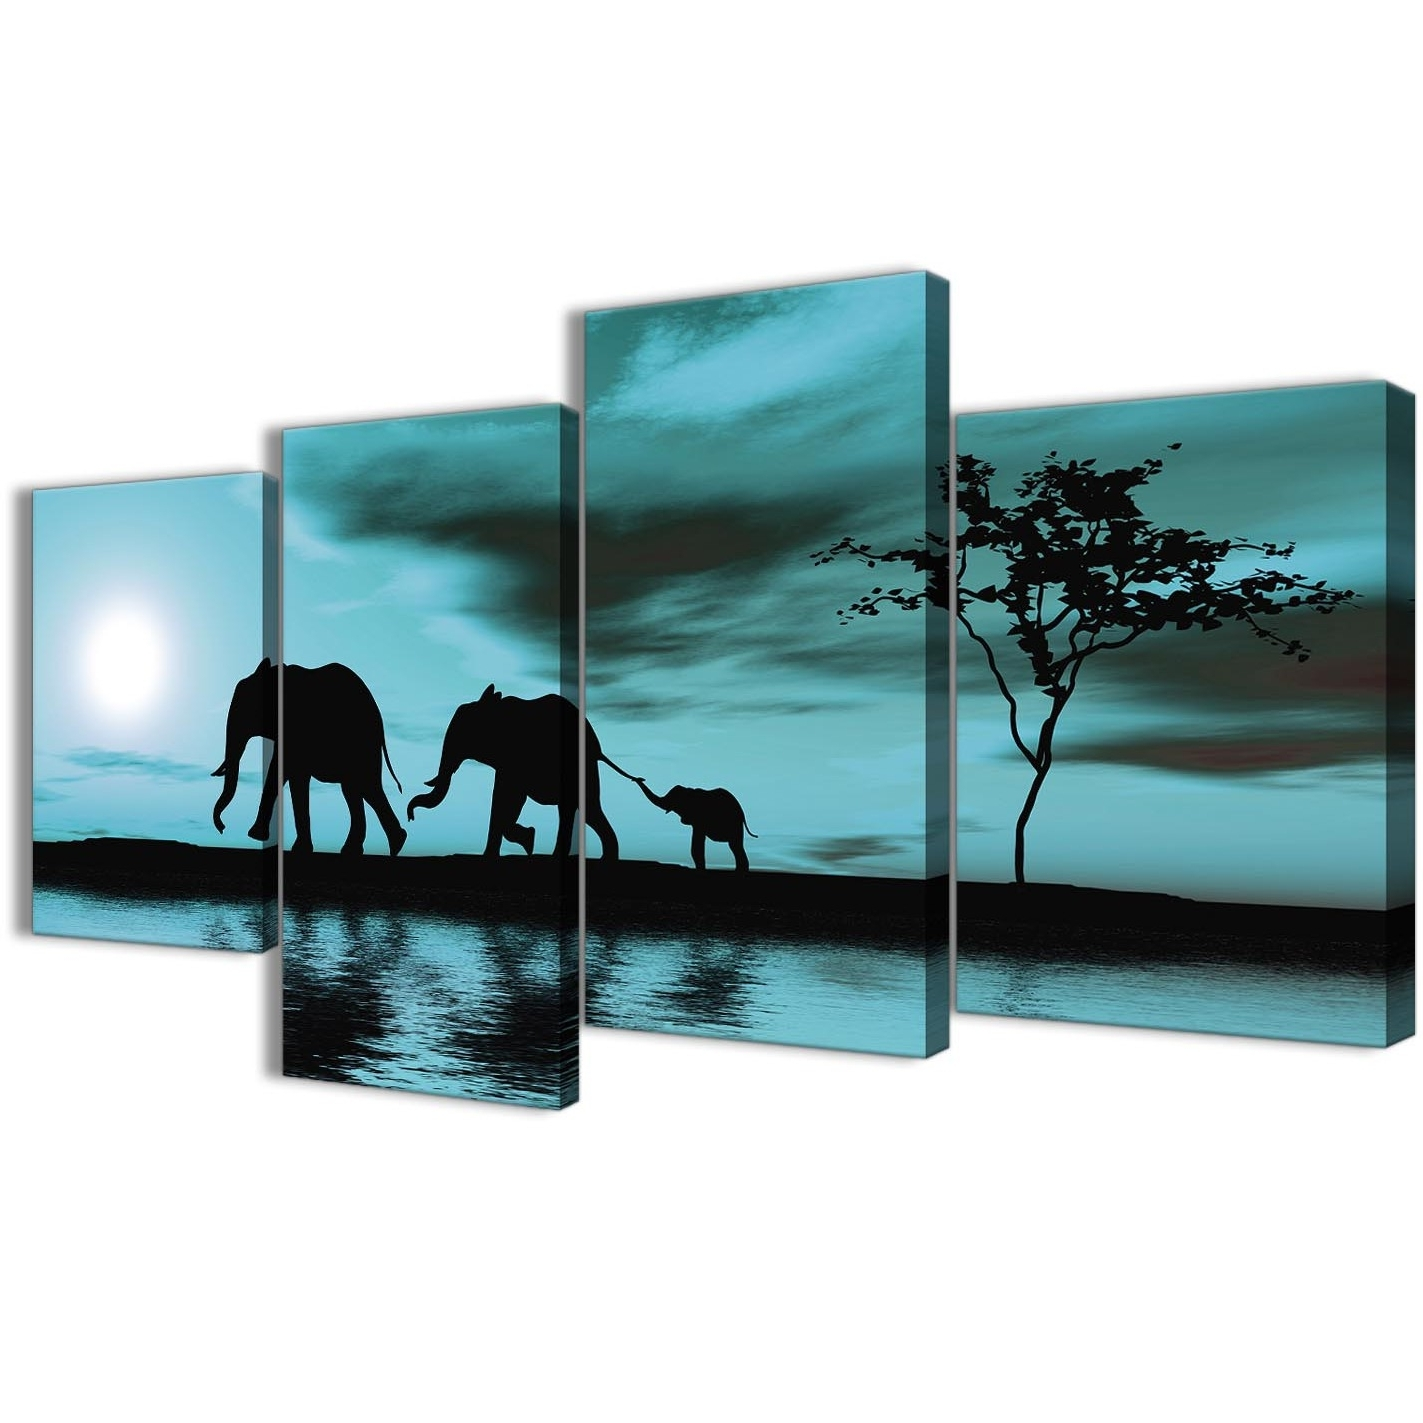 Oversized Teal Canvas Wall Art In Popular Large Teal African Sunset Elephants Canvas Wall Art Print – Multi  (View 9 of 20)